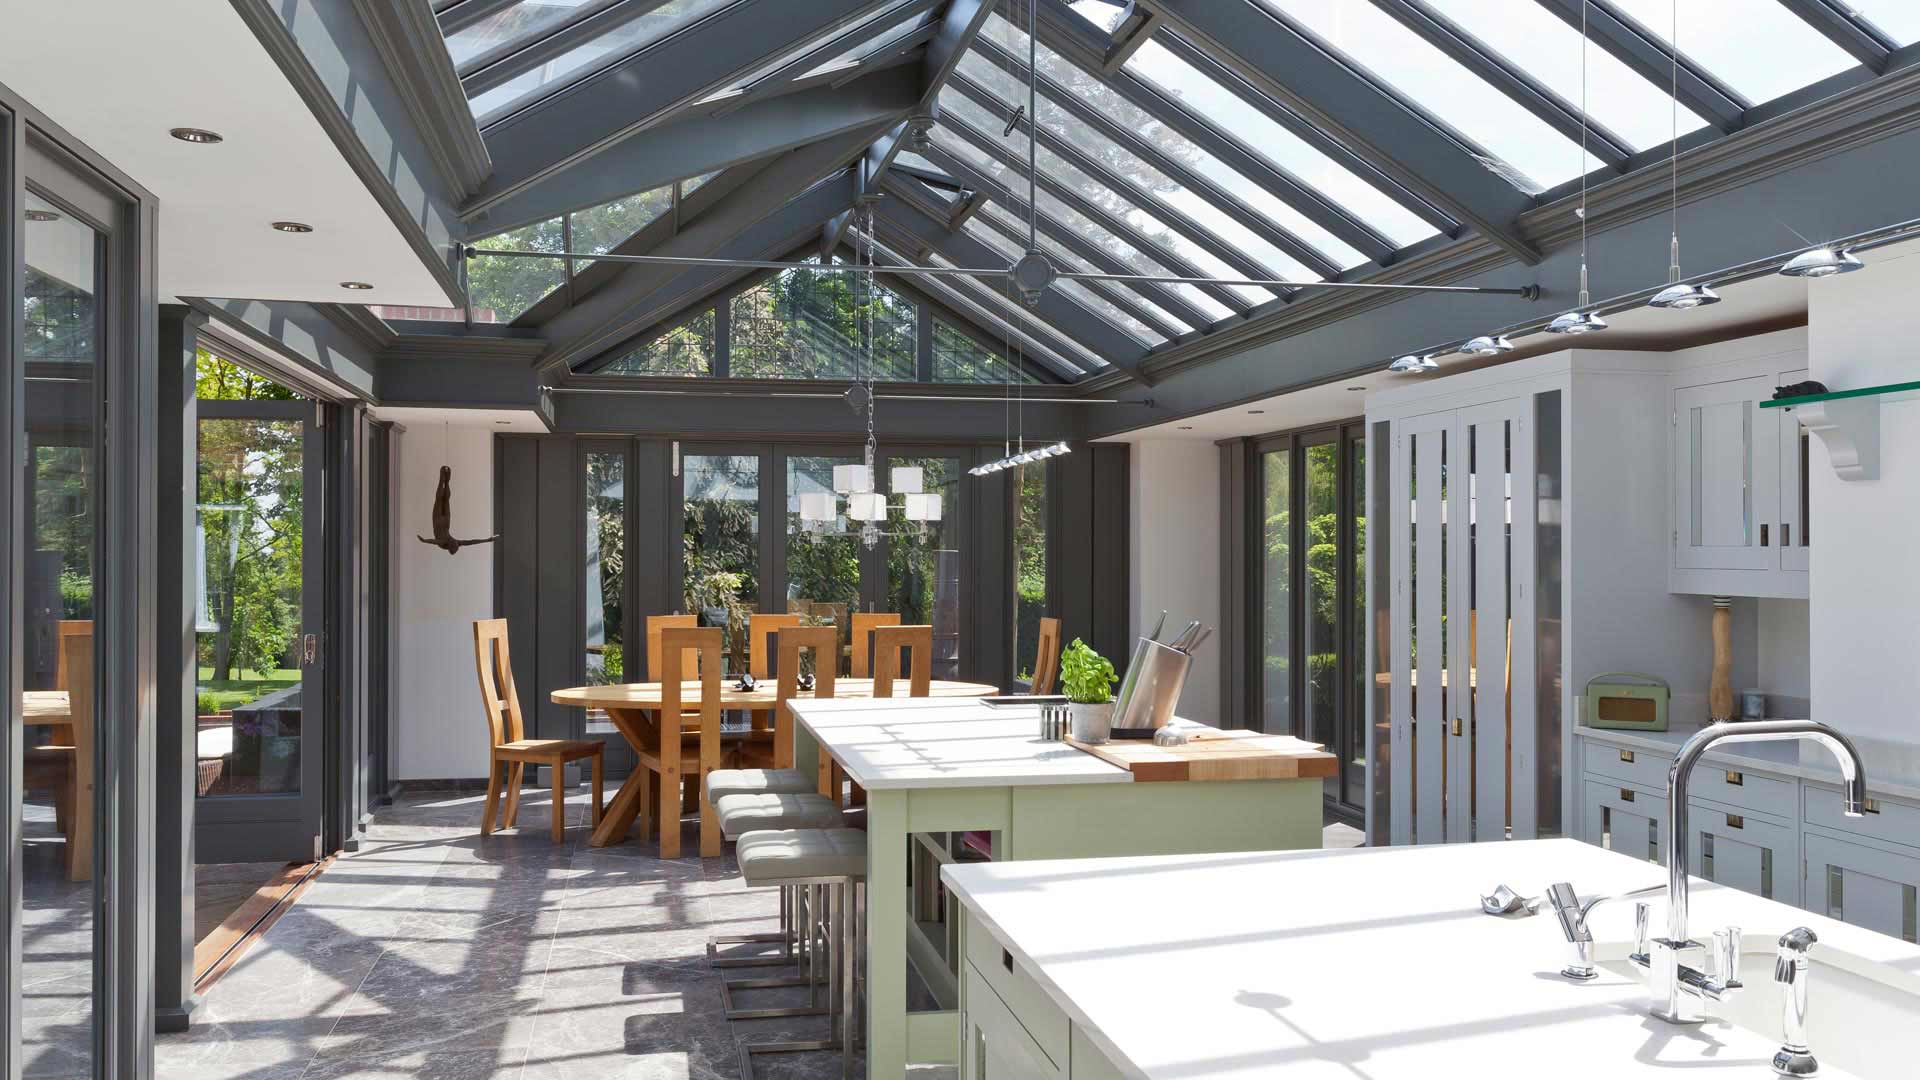 A modern kitchen conservatory provides contrast on this period home